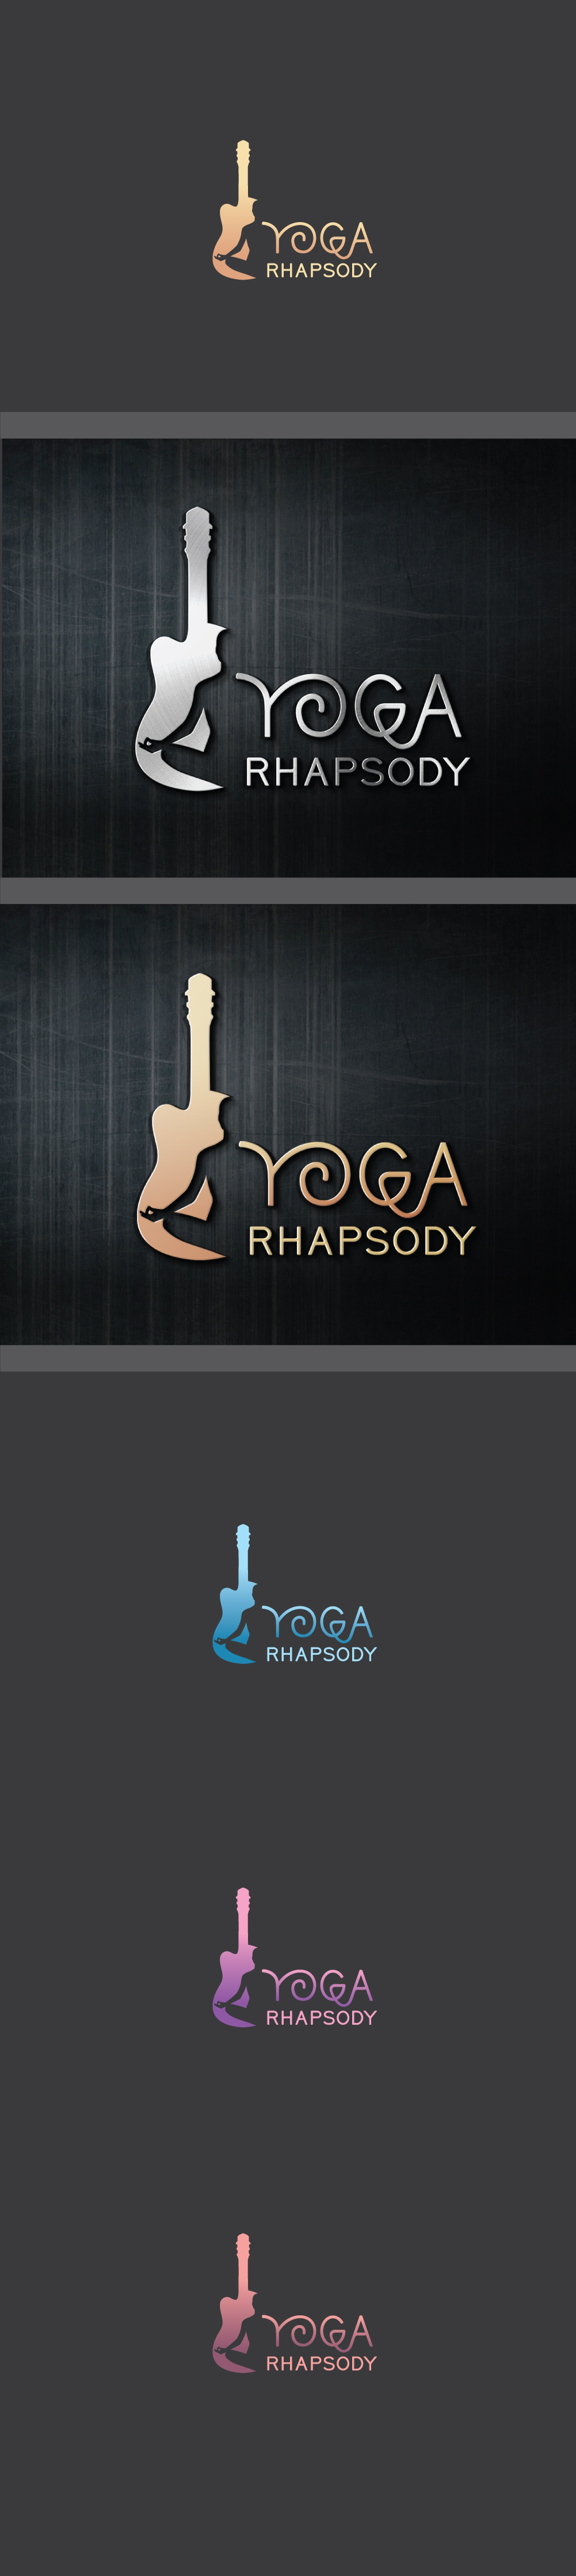 Wanted - logo & website for yoga and live music business